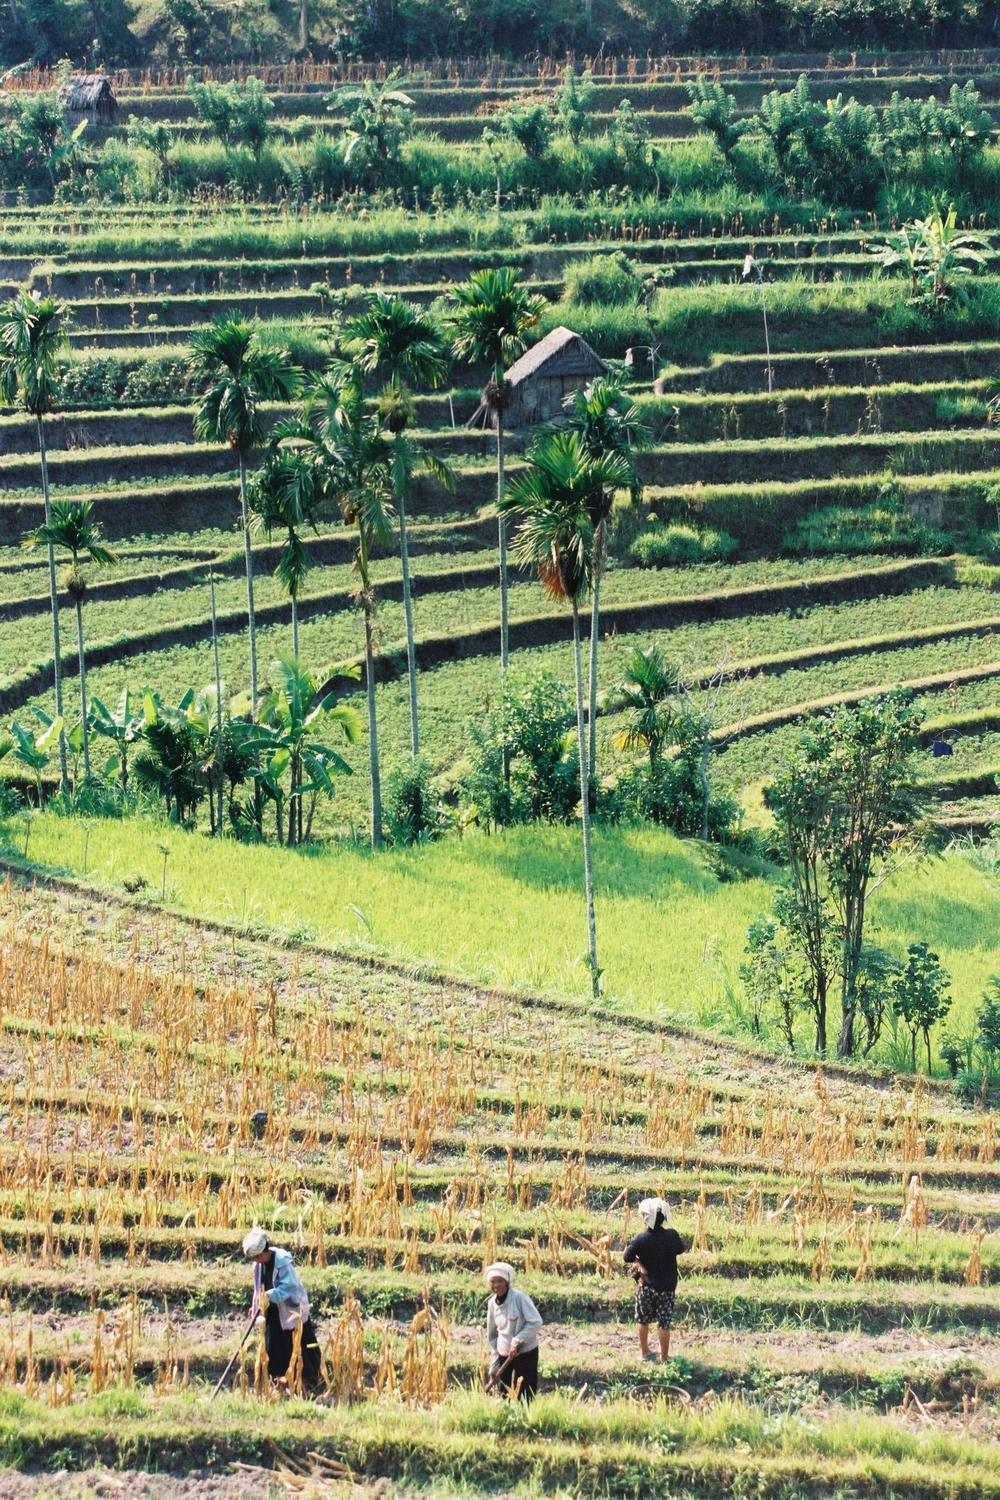 Indonesia is cutting exports in a bid to ensure sufficient rice supplies.